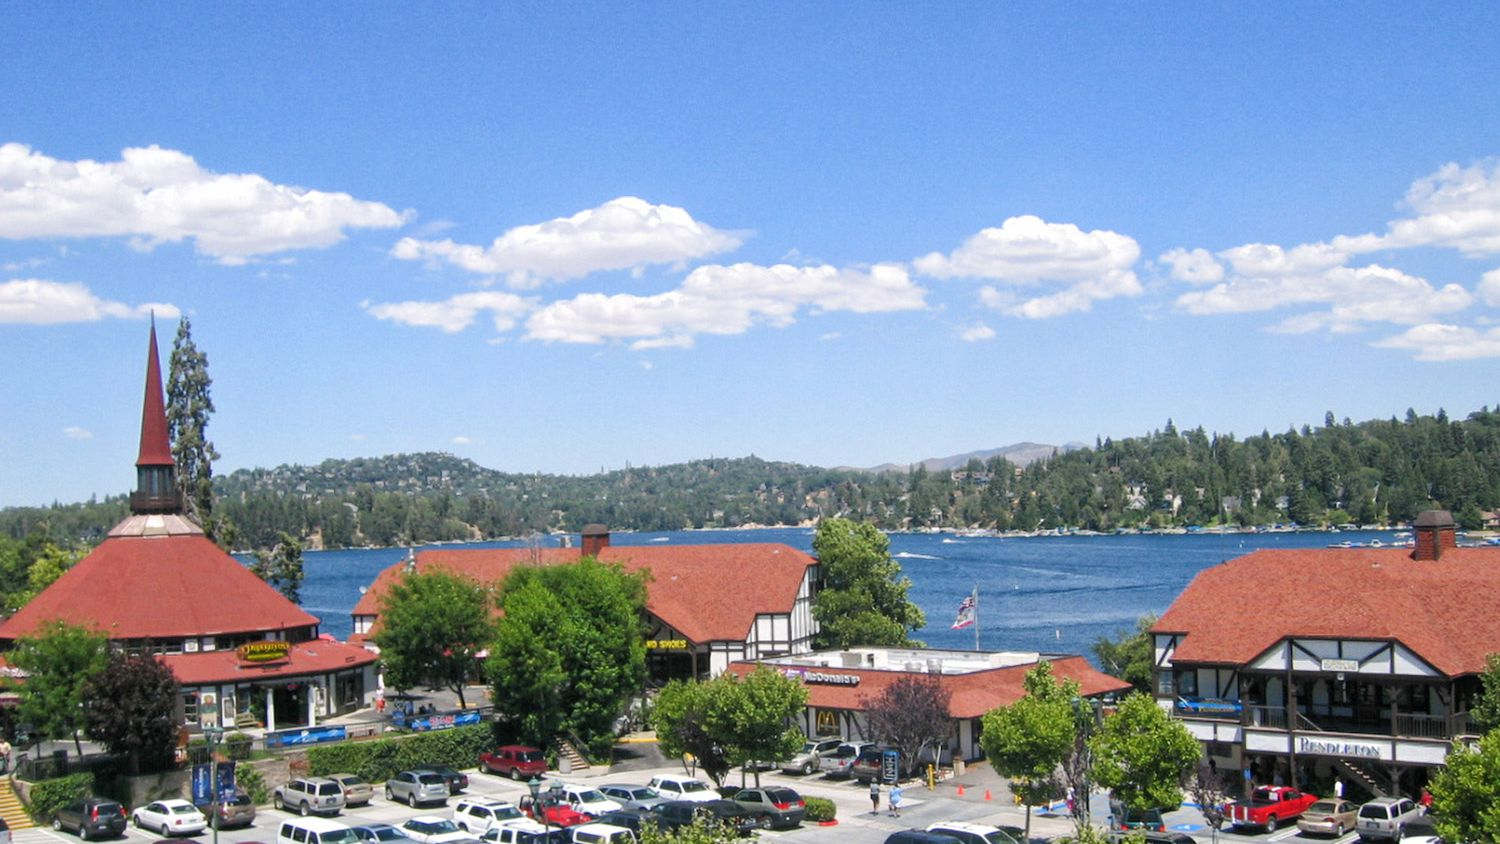 lake arrowhead village map Best Things To Do At Lake Arrowhead California lake arrowhead village map